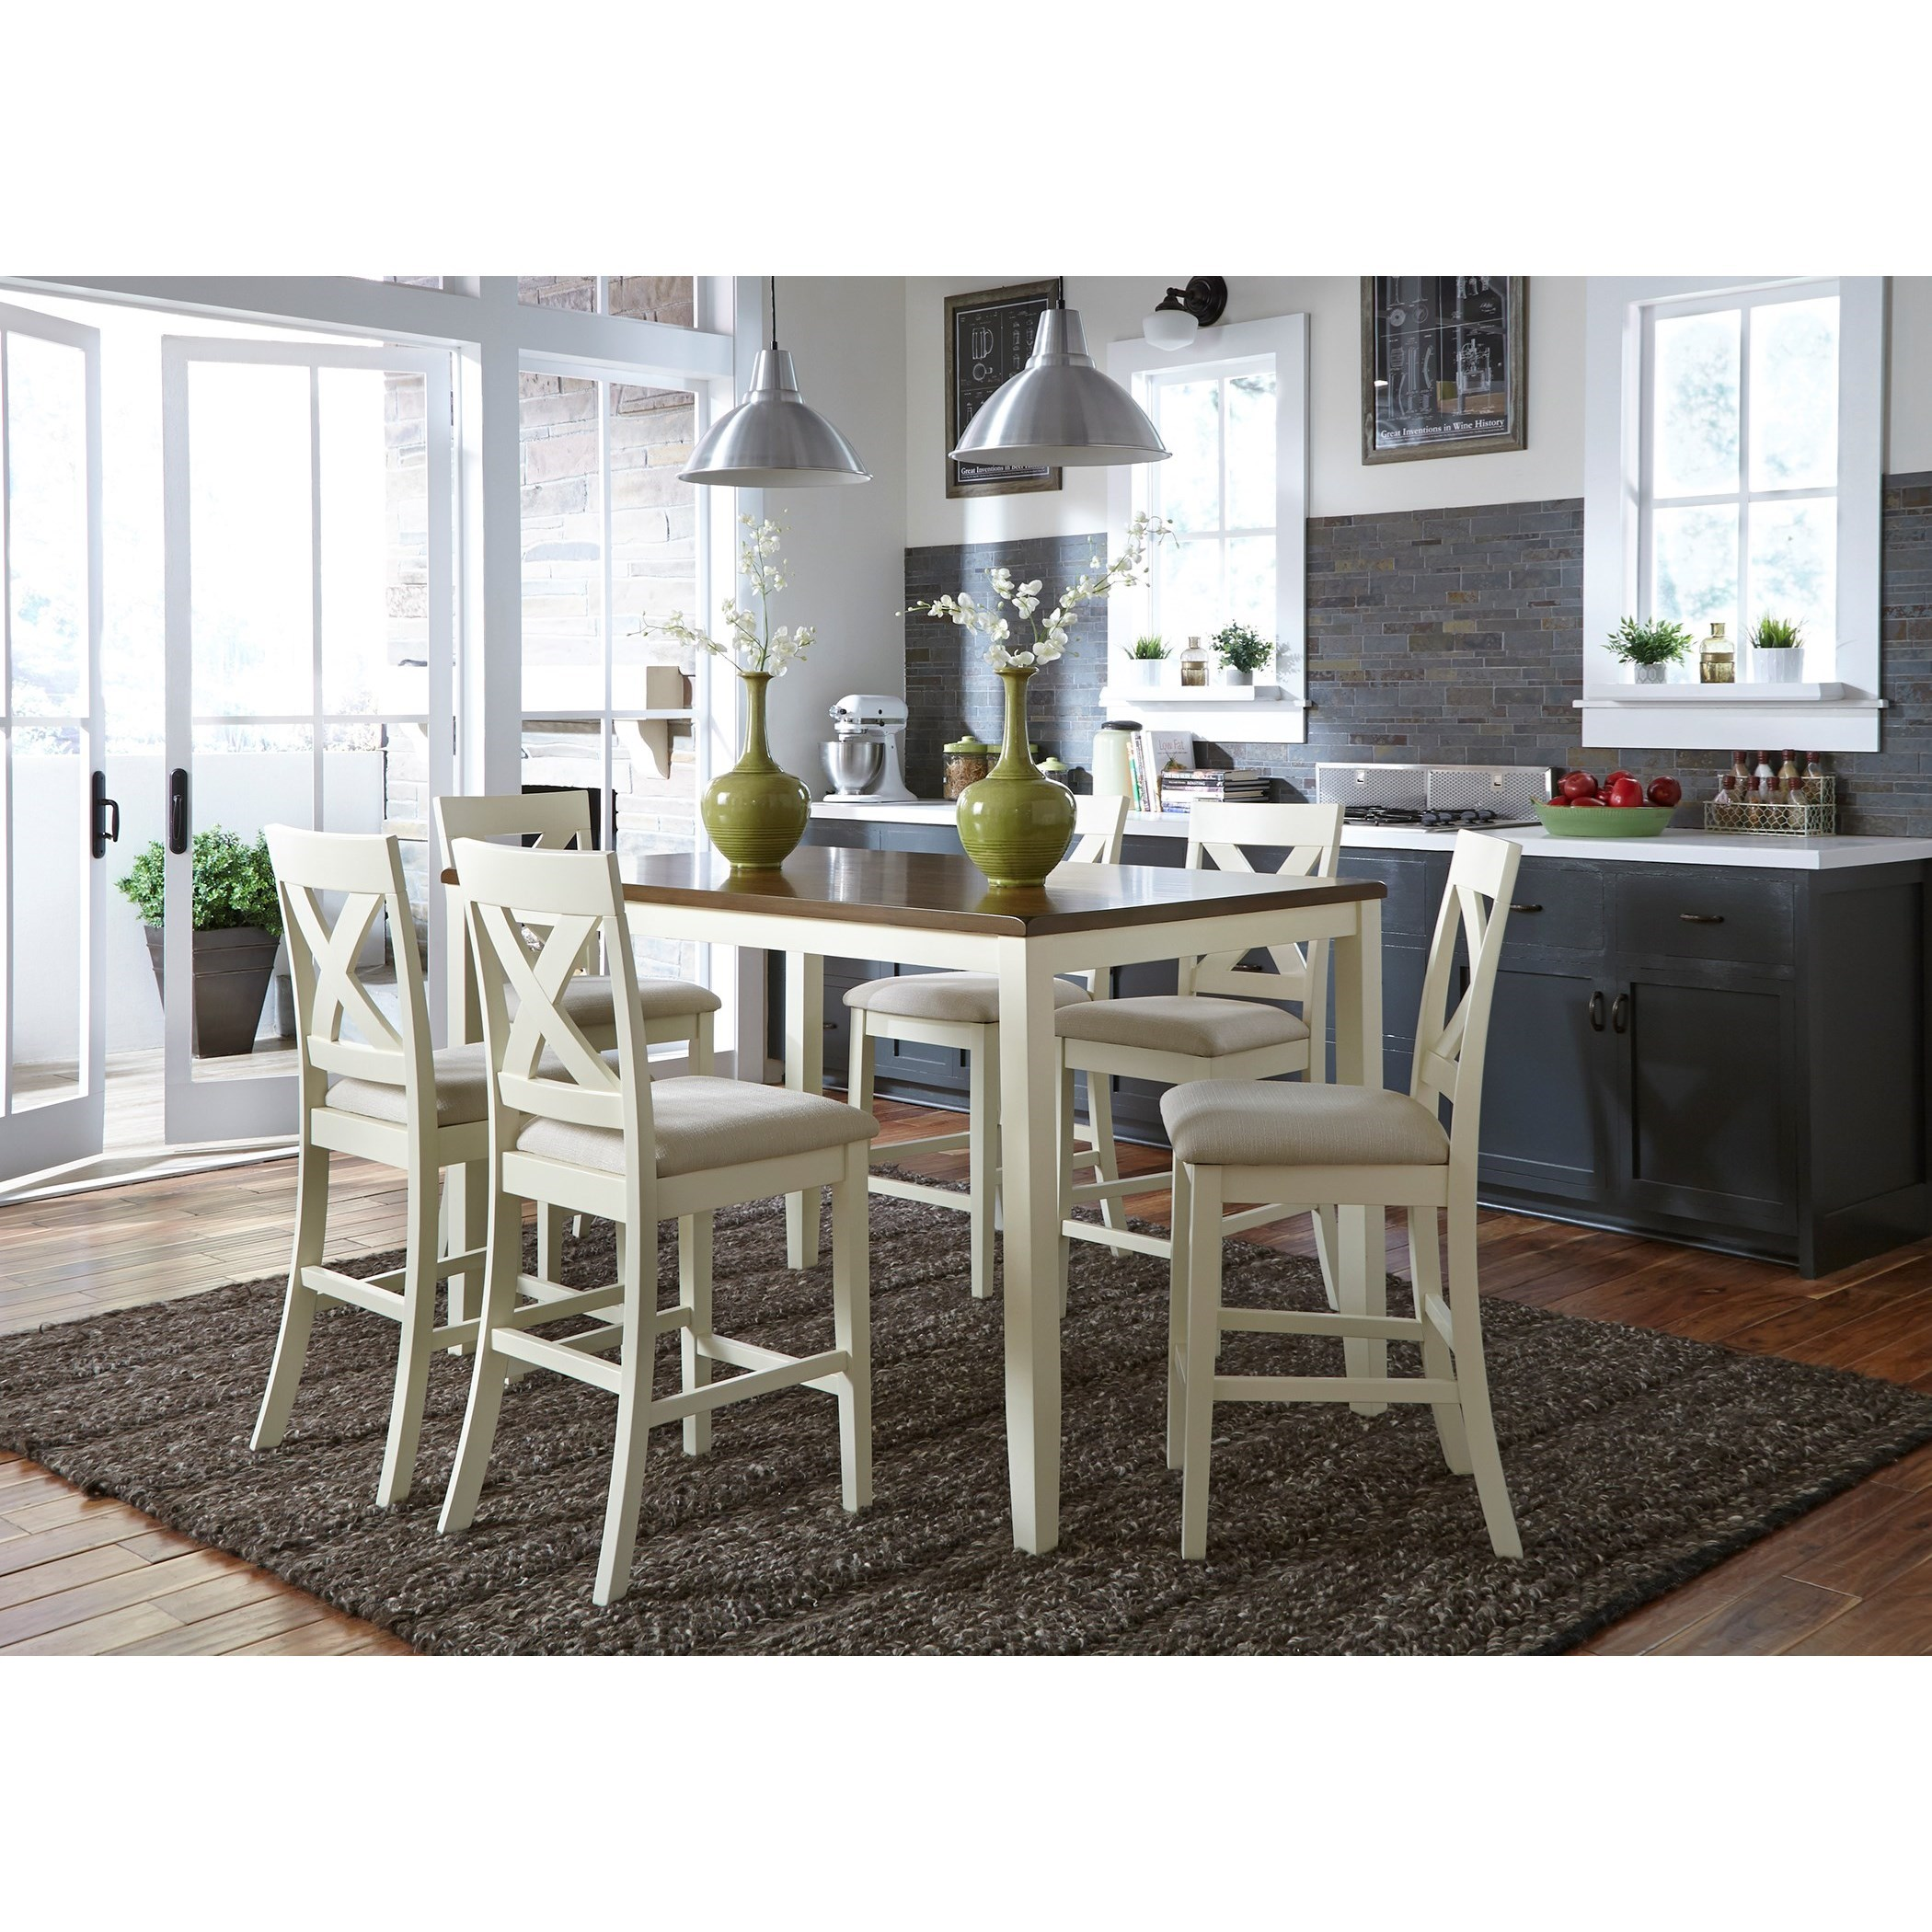 Thornton 7 Piece Gathering Table Set by Libby at Walker's Furniture